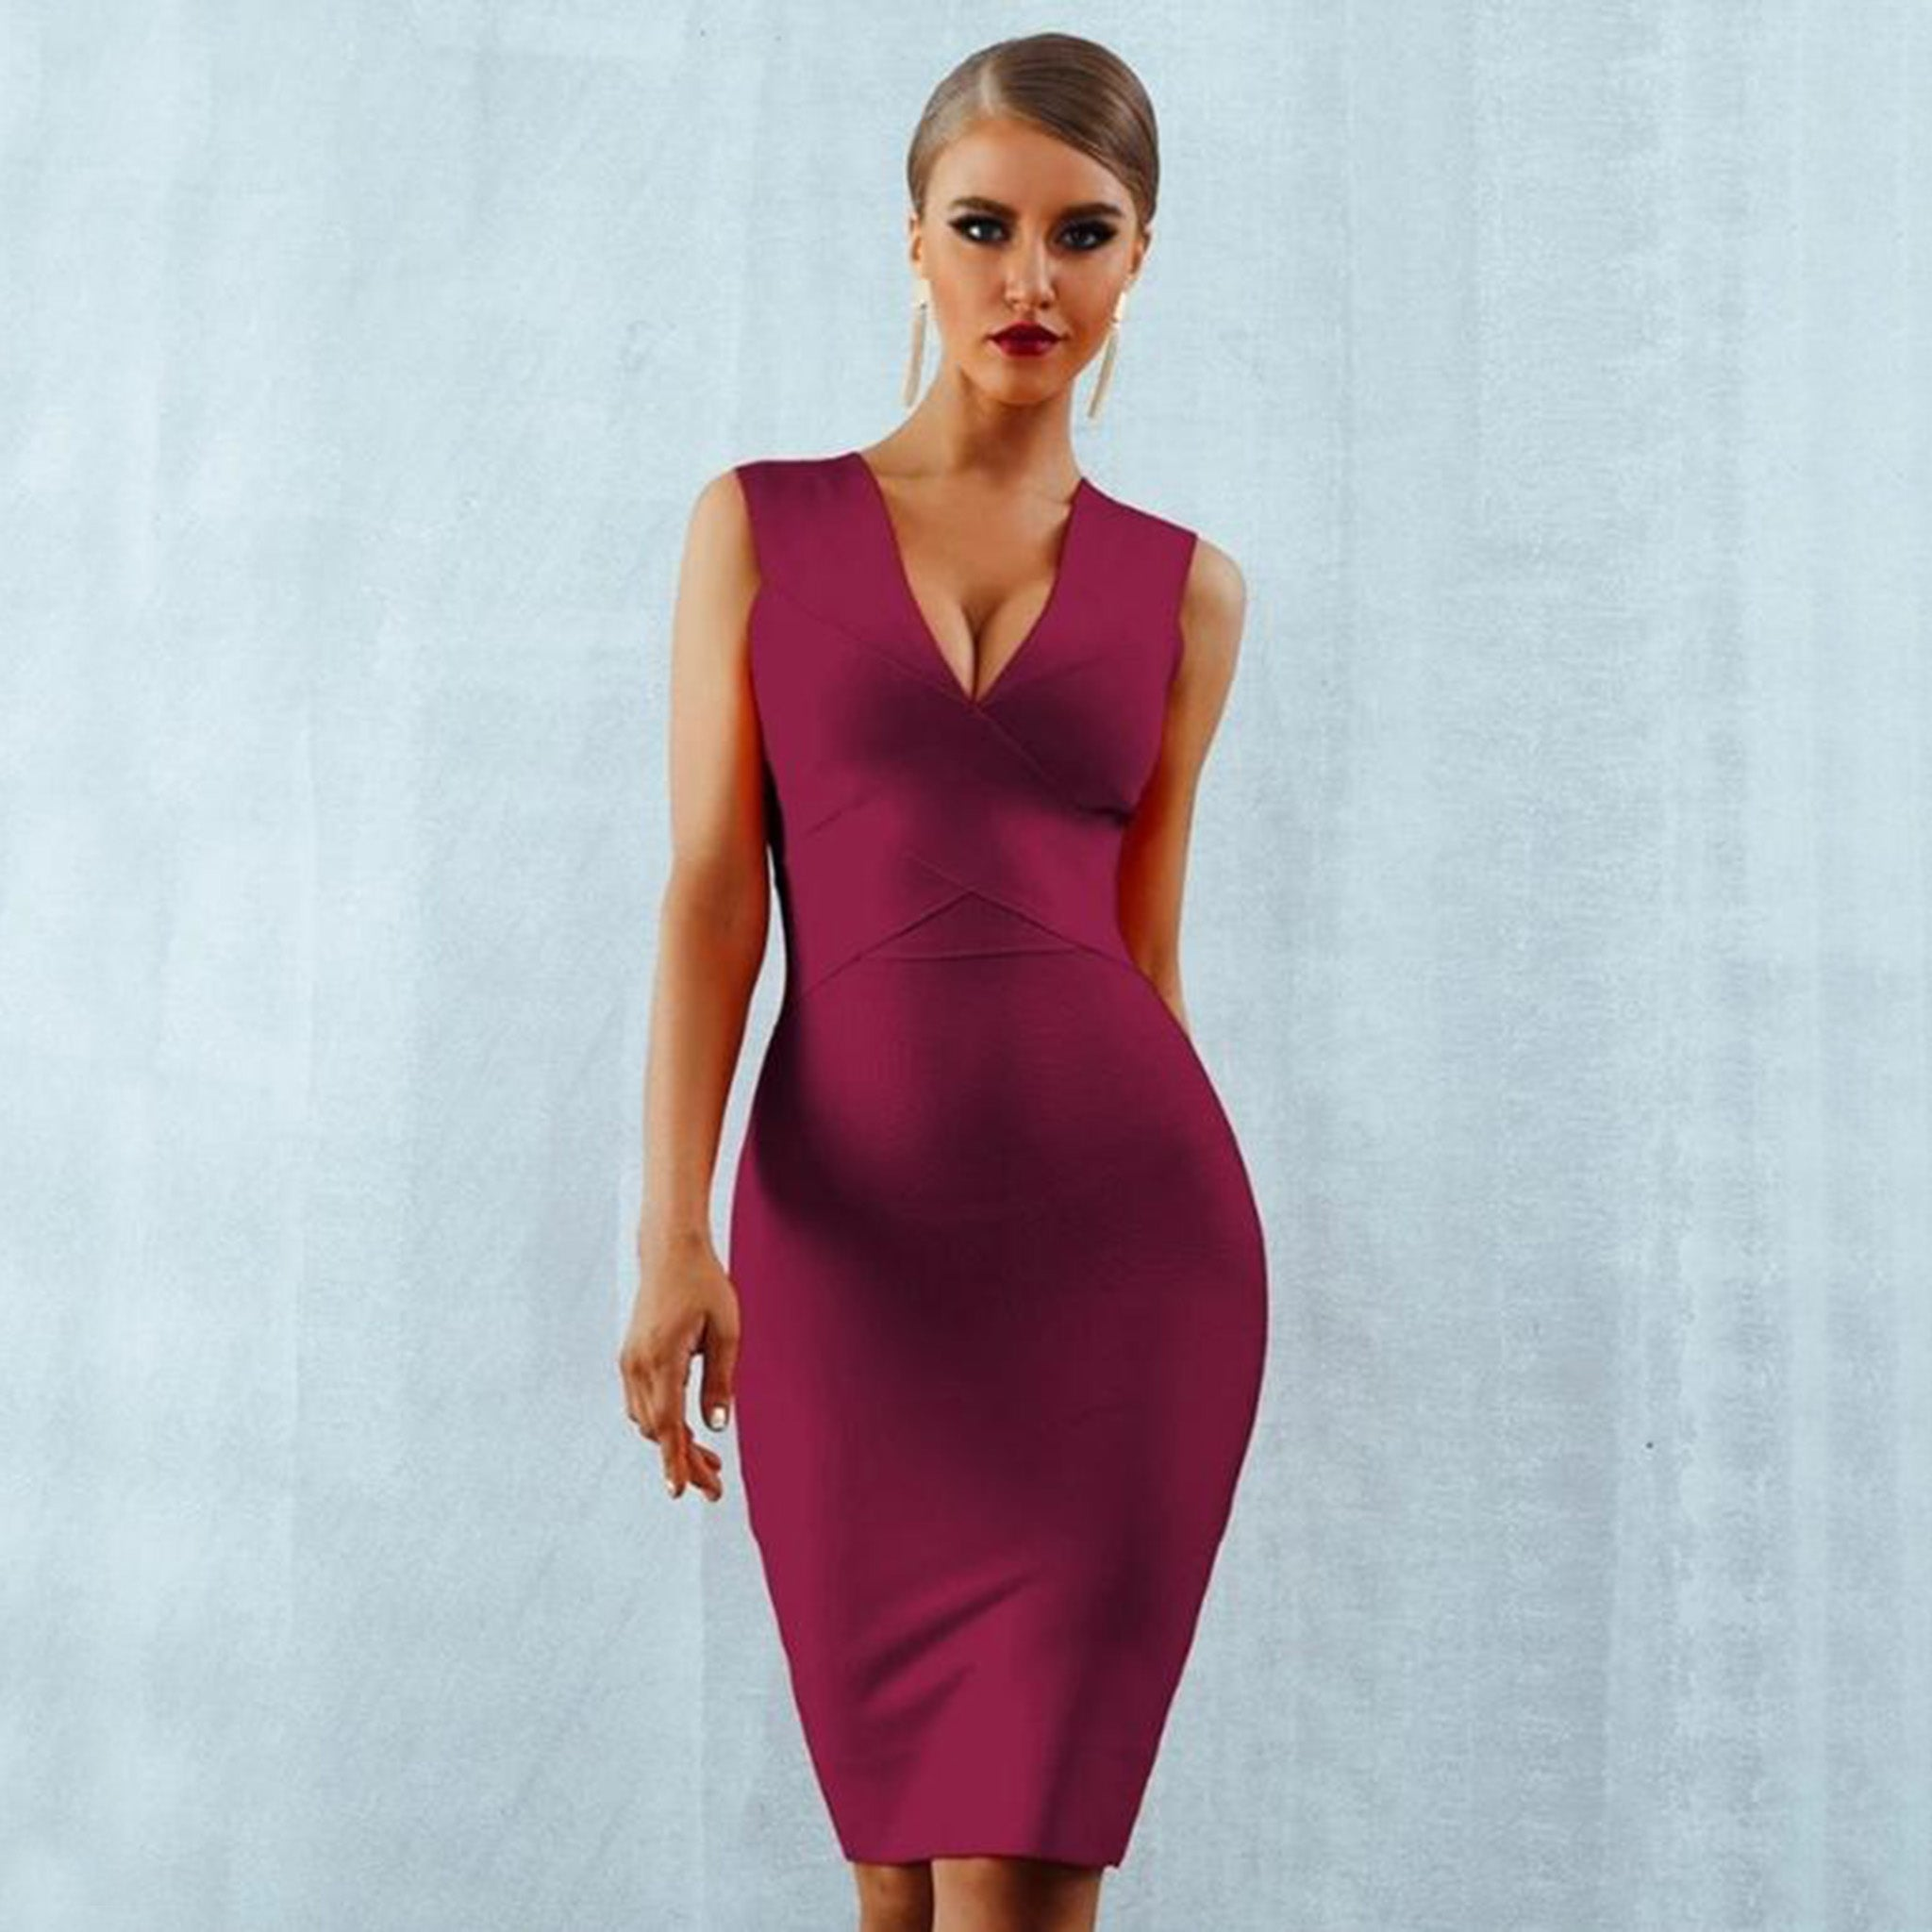 Burgundy Bandage Cross Front Dress - Top Glam Shop